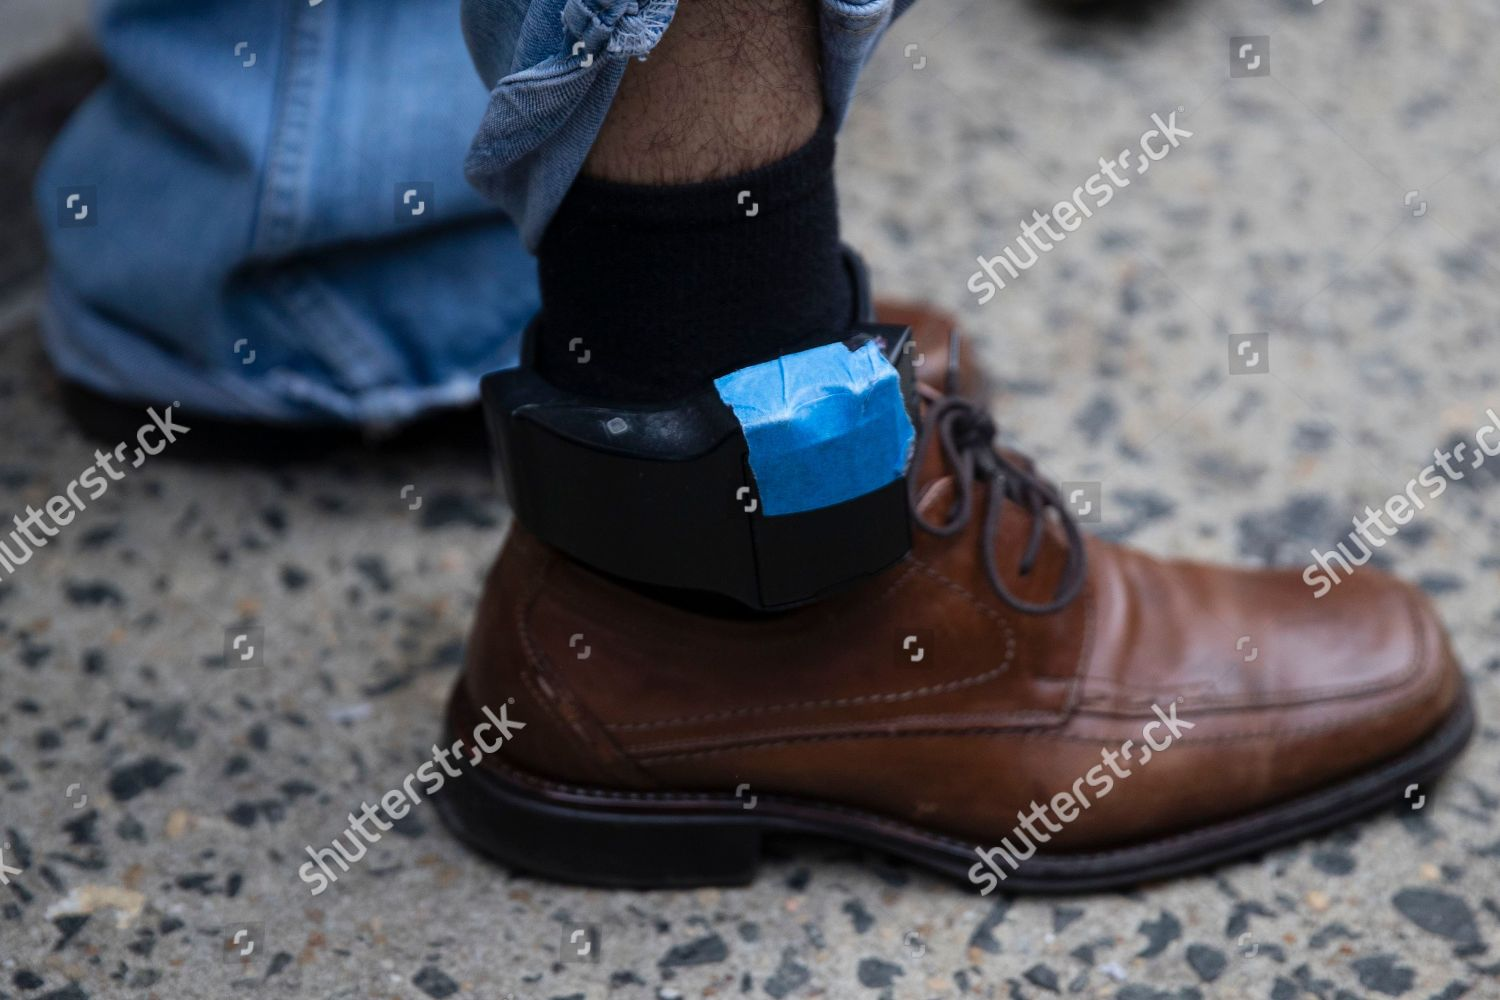 Javier Flores Garcia shows his ankle monitor Editorial Stock